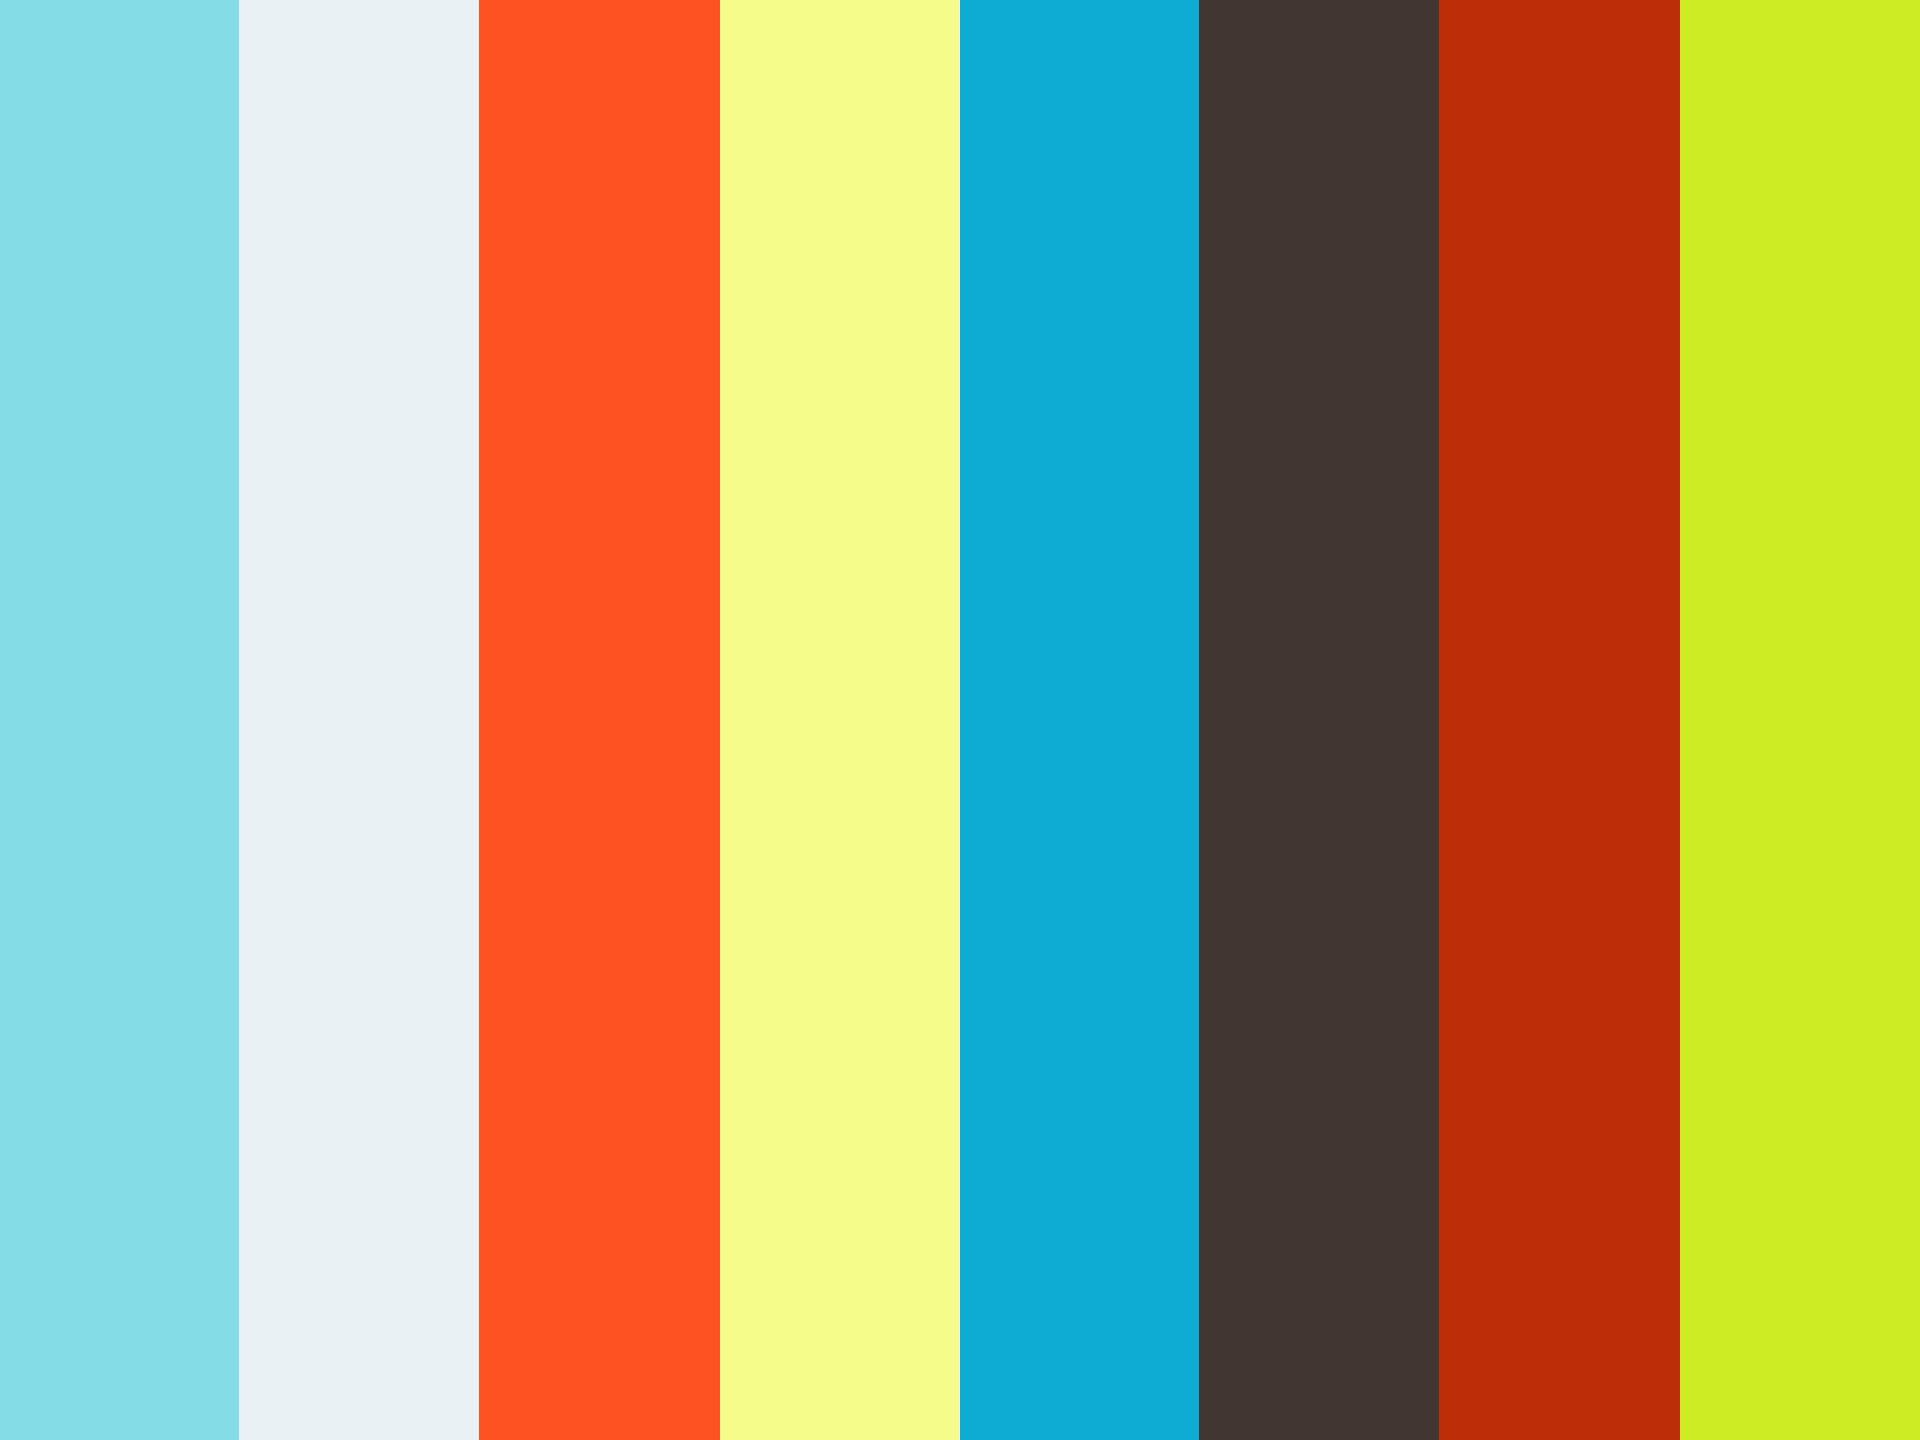 Evaluation of LT Prognostic Significance of 8F-FDG PET and Pathologic Assessment 2011